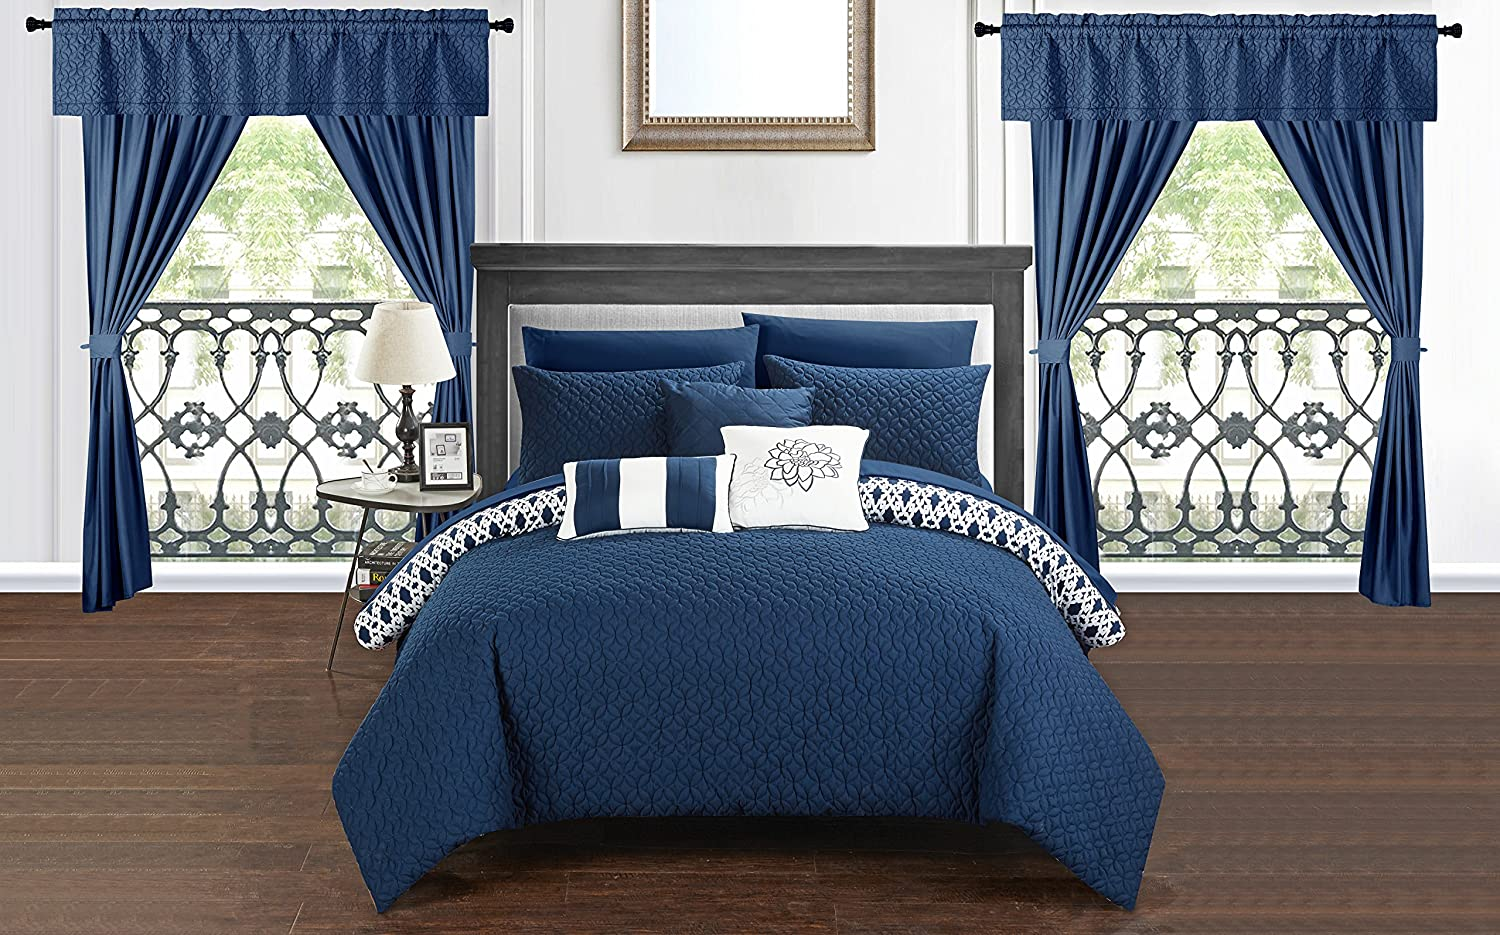 Chic Home Sigal 20 Piece Comforter Set Reversible Geometric Quilted Design Complete Bed in a Bag Bedding – Sheets Decorative Pillows Shams Window Treatments Curtains Included King Navy